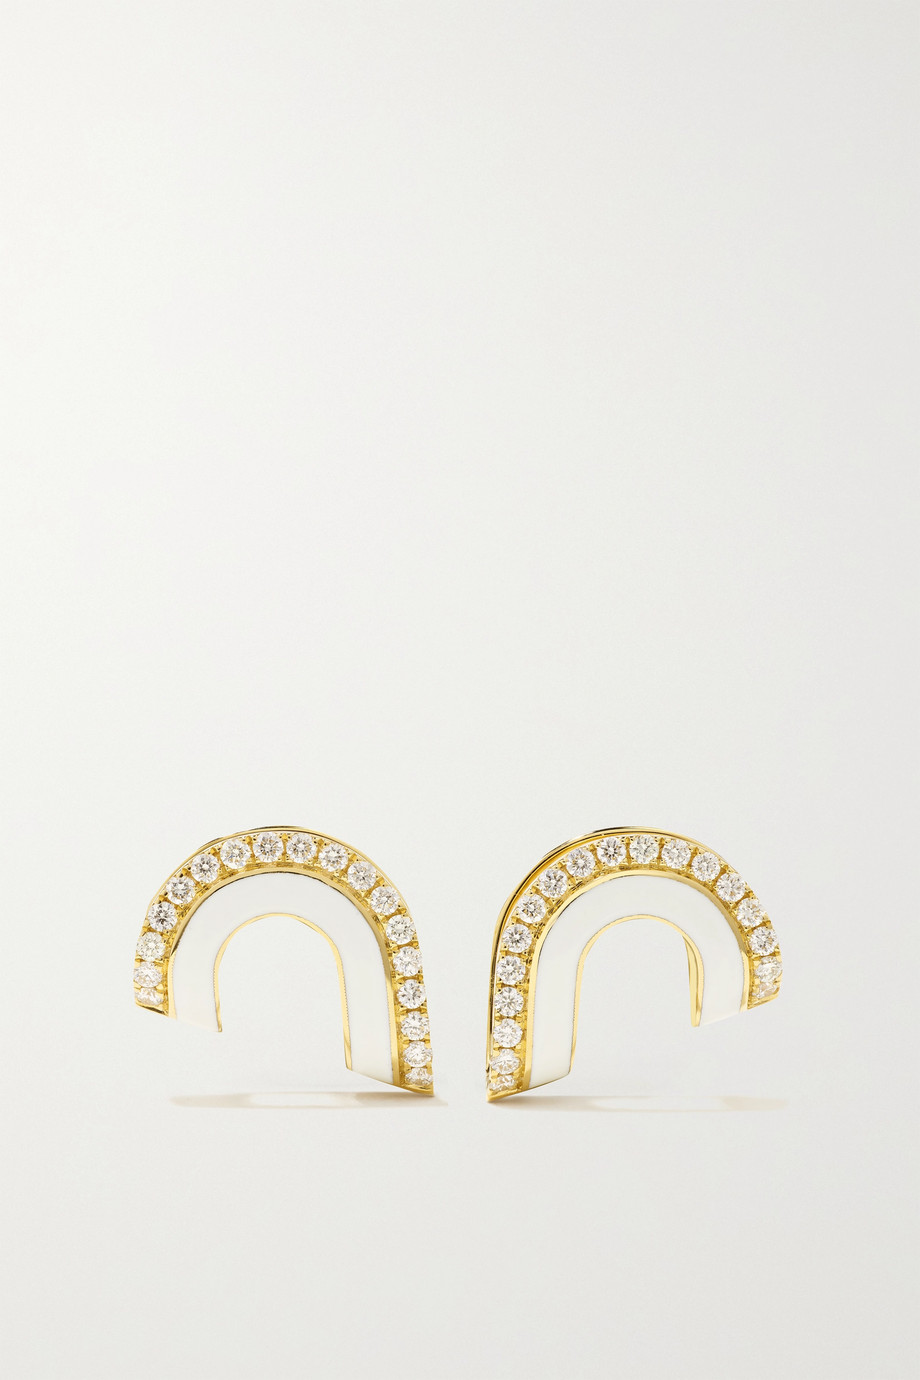 STATE PROPERTY Dias 18-karat gold, enamel and diamond earrings